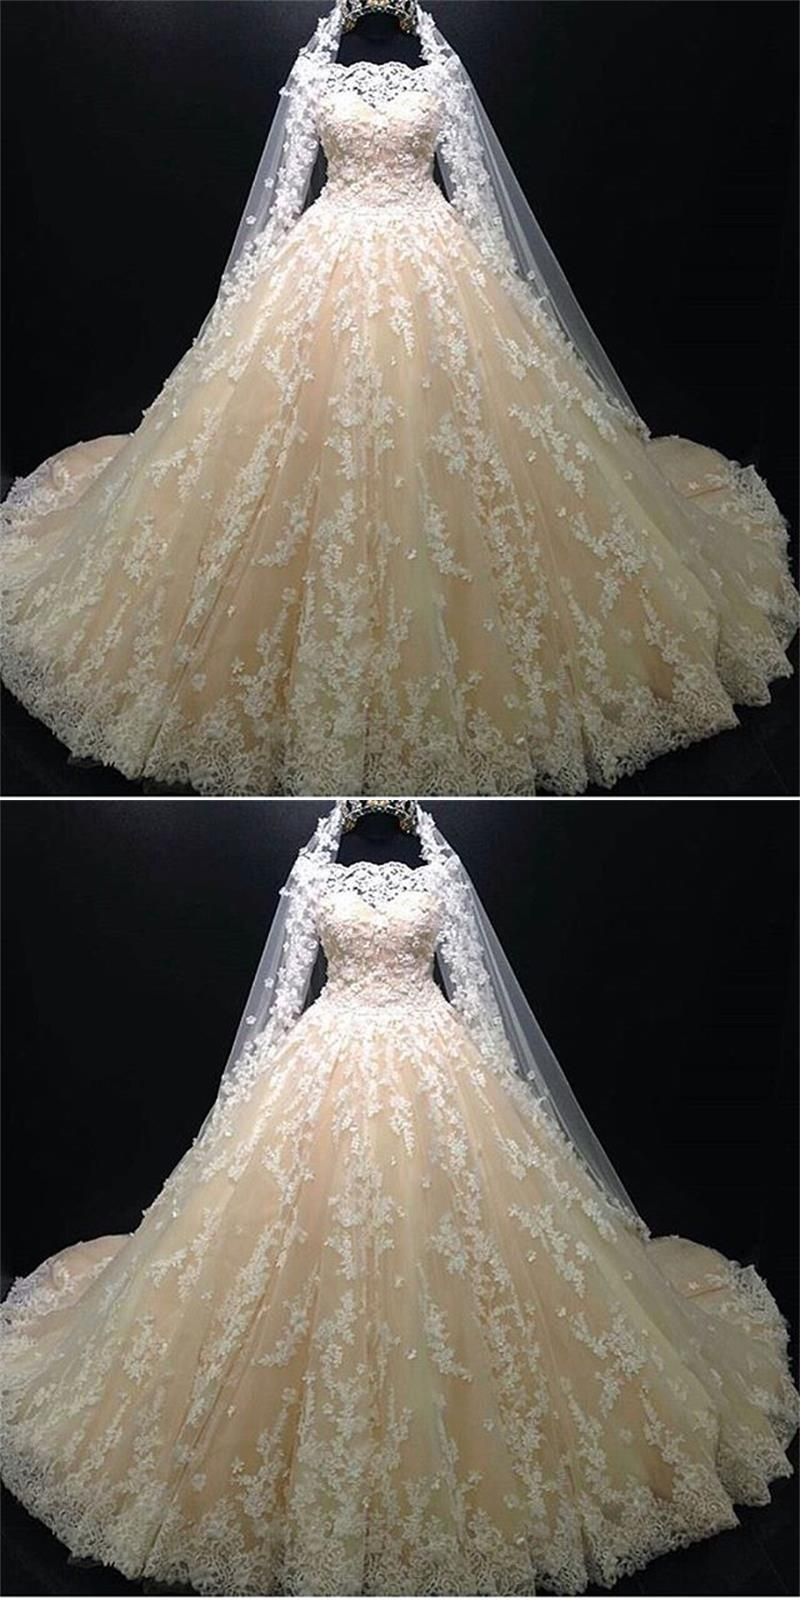 Lace wedding dress champagne  Luxury Ball Gown Champagne Wedding Dresses  Long Sleeve Lace